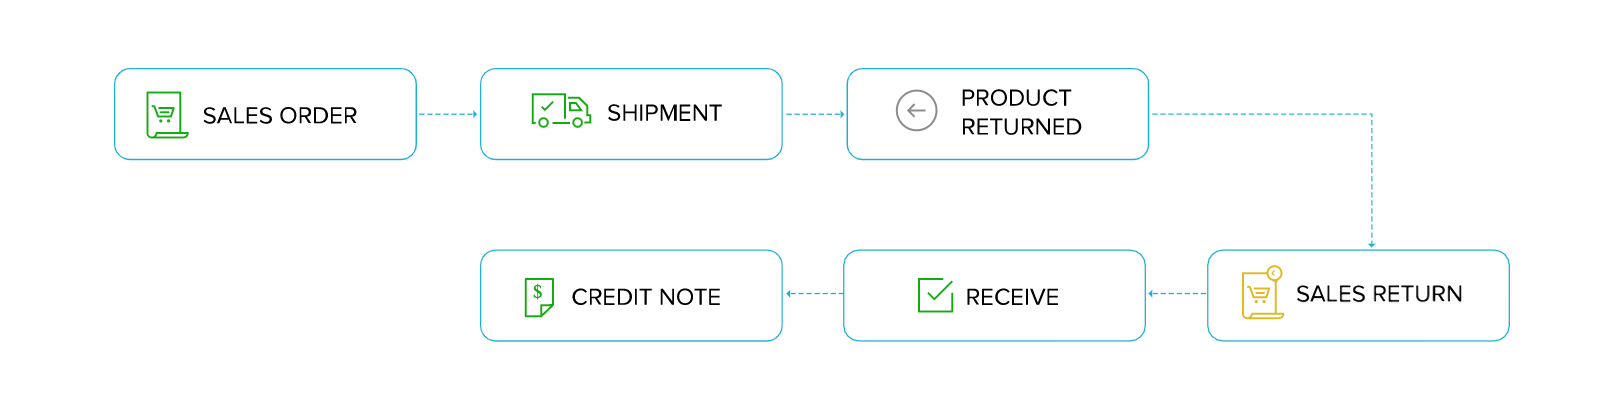 Sales Return workflow